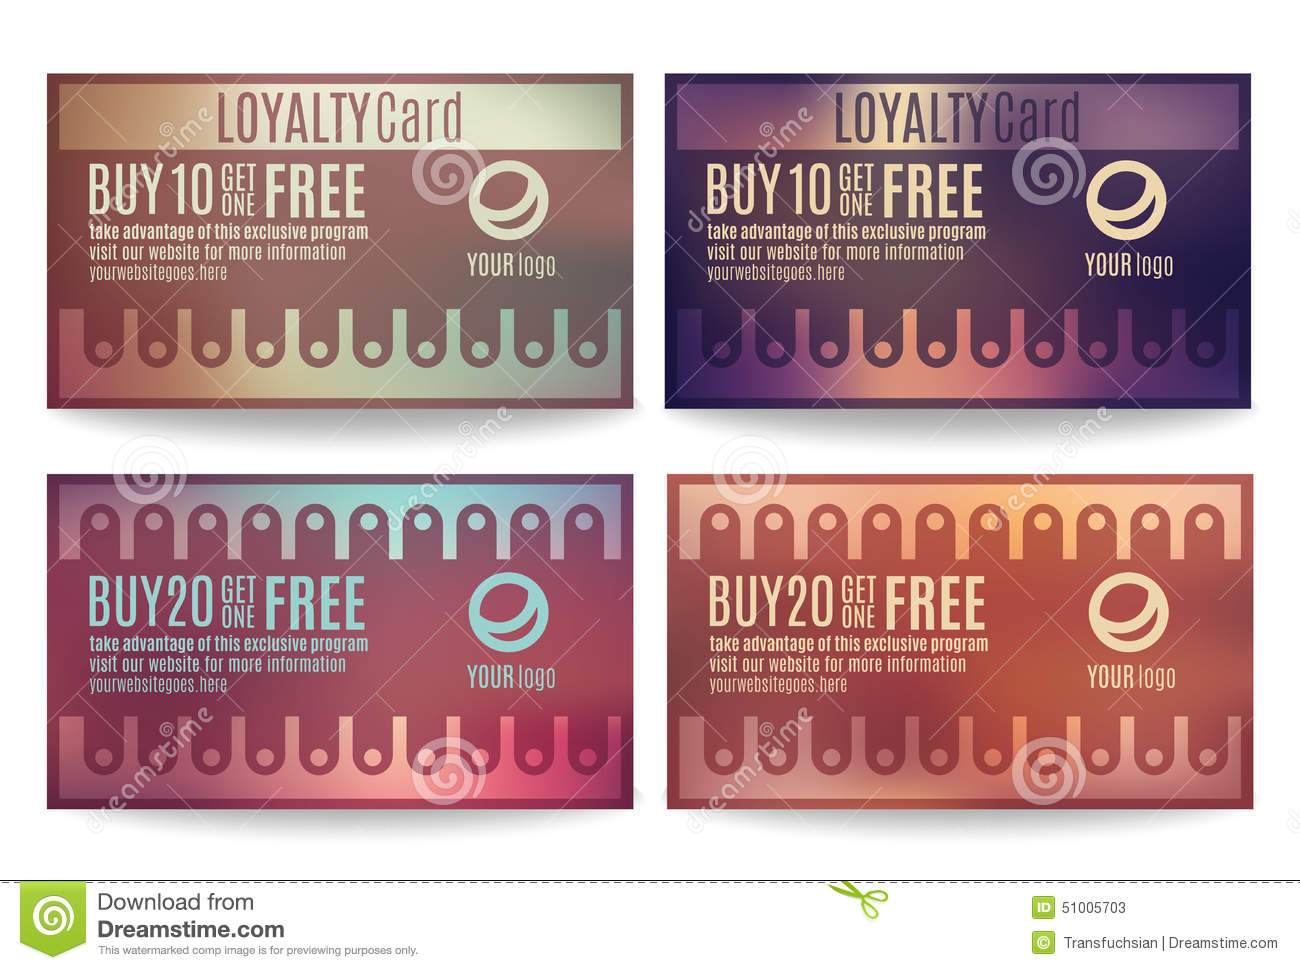 Customer Loyalty Card Templates Stock Vector Illustration Of - Loyalty card template word